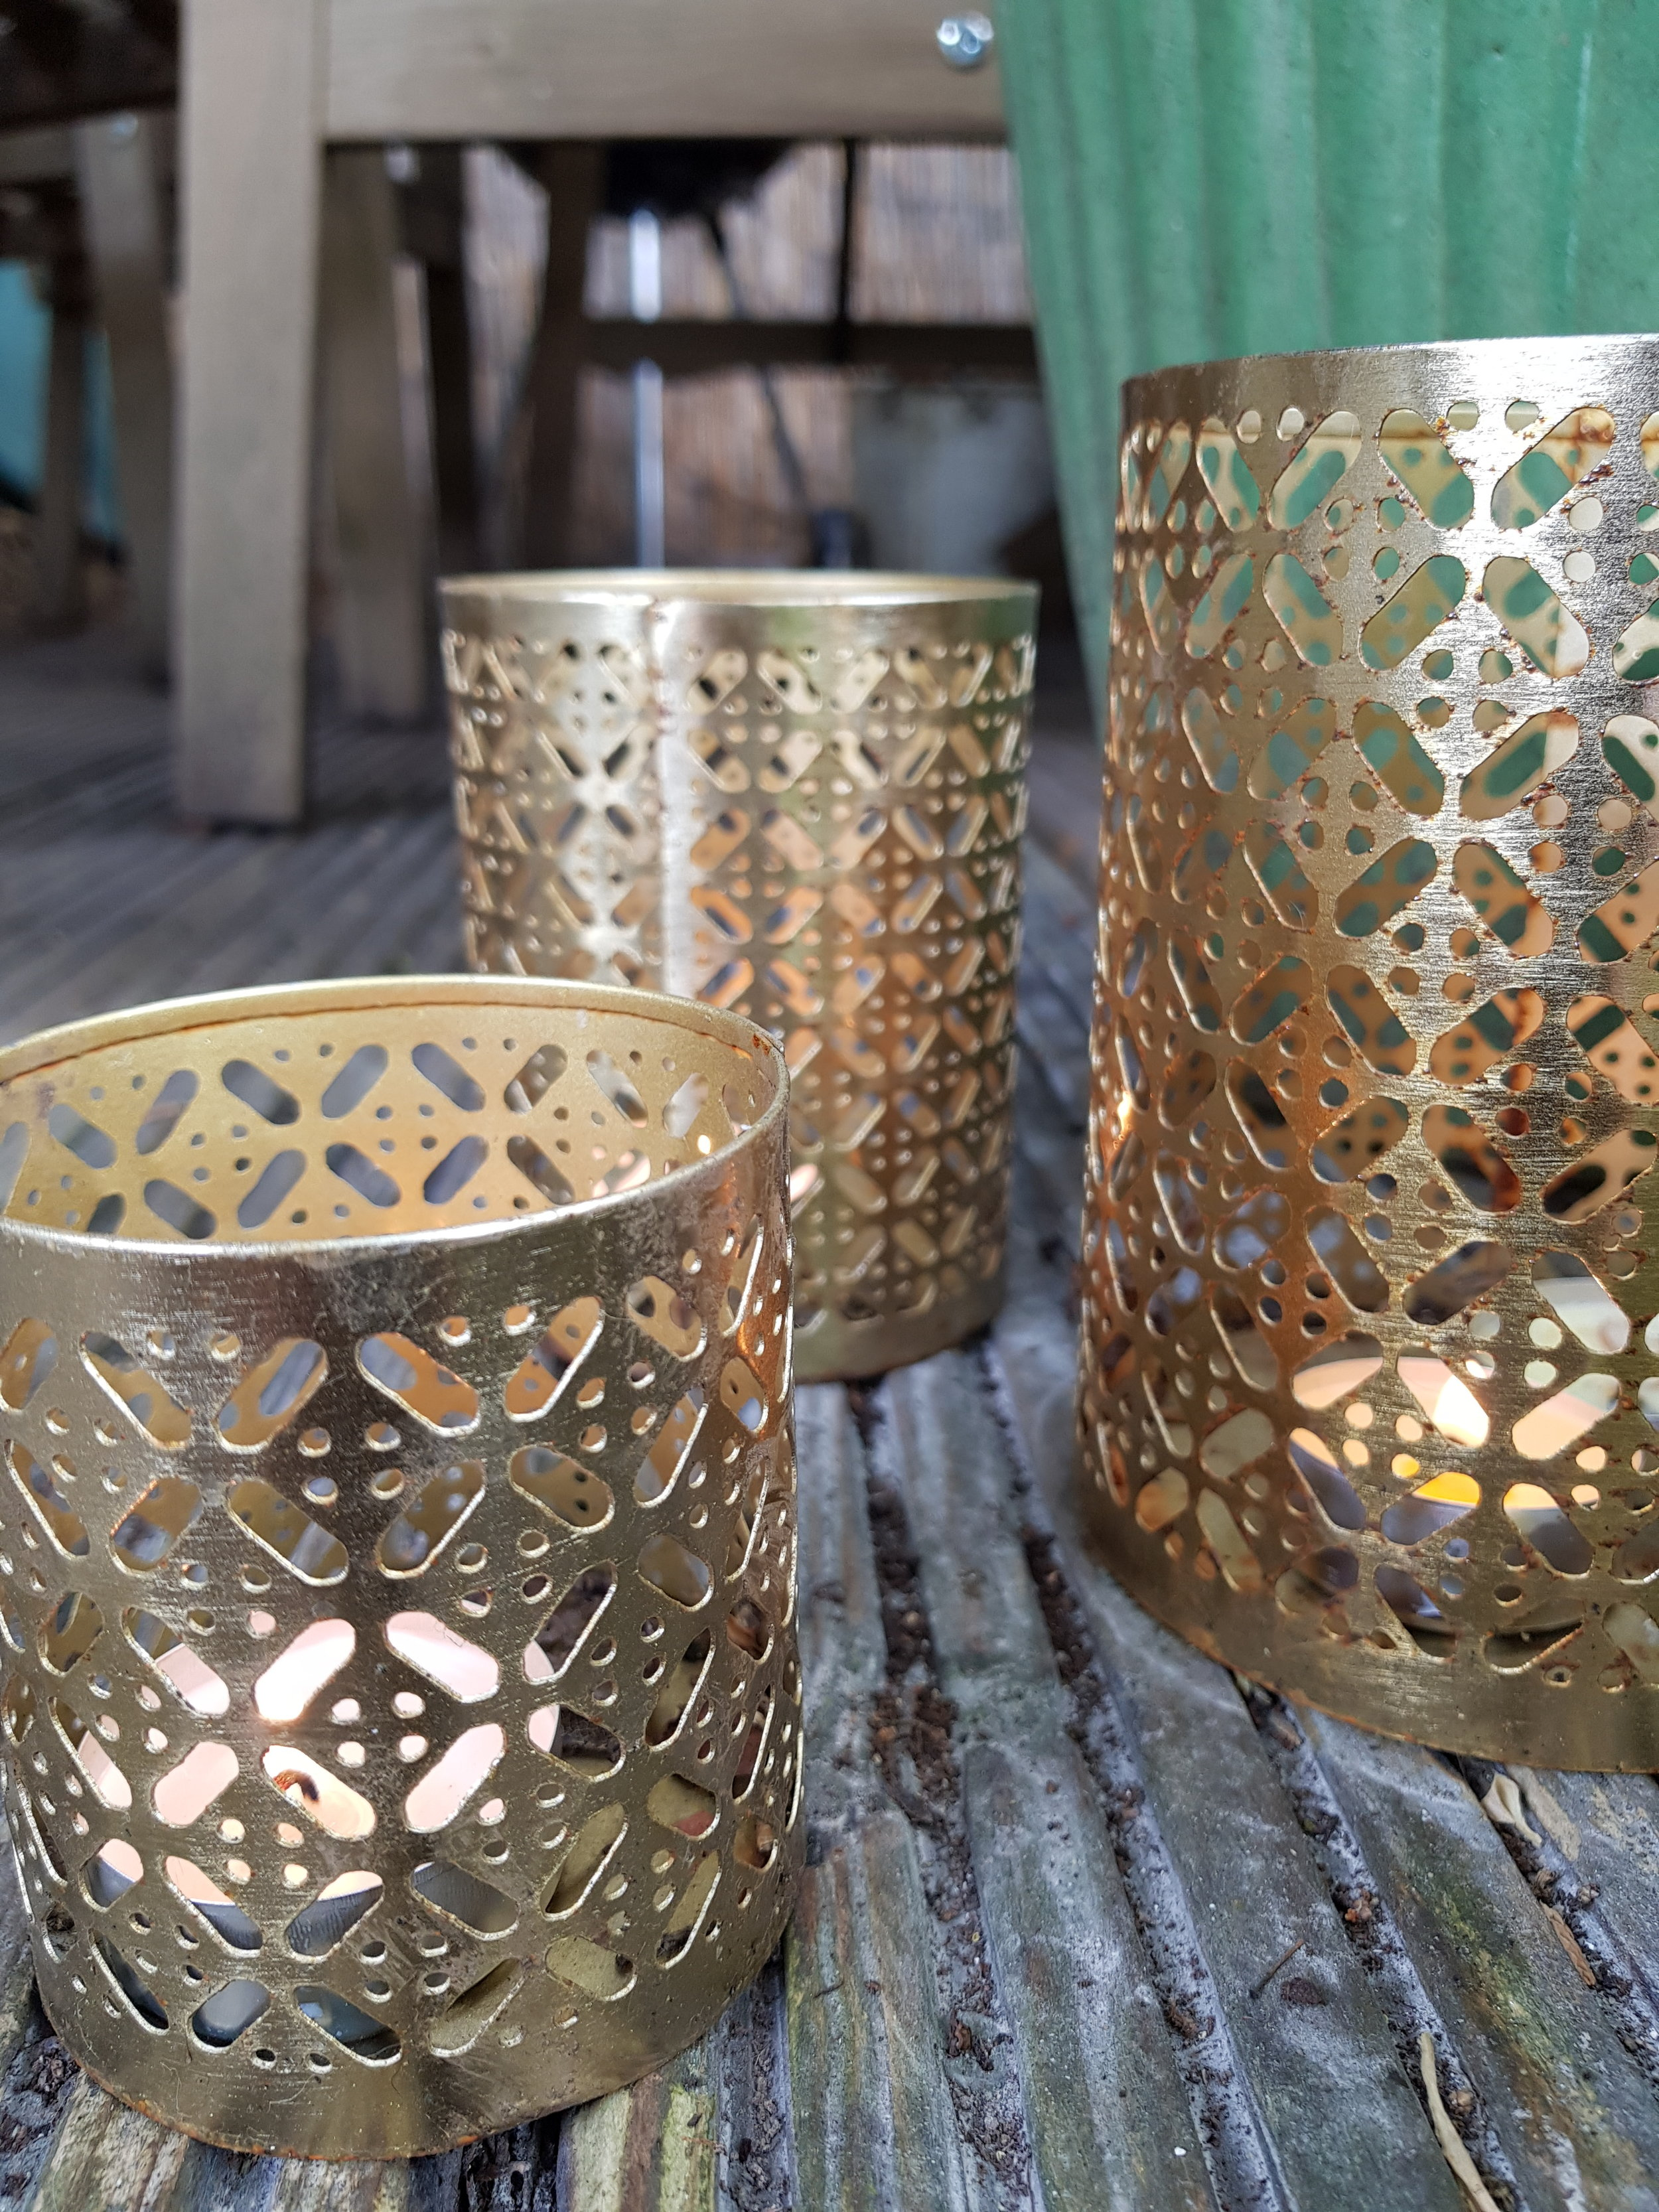 Inexpensive hurricane lamps and tea light holders can bring ambience to eating areas